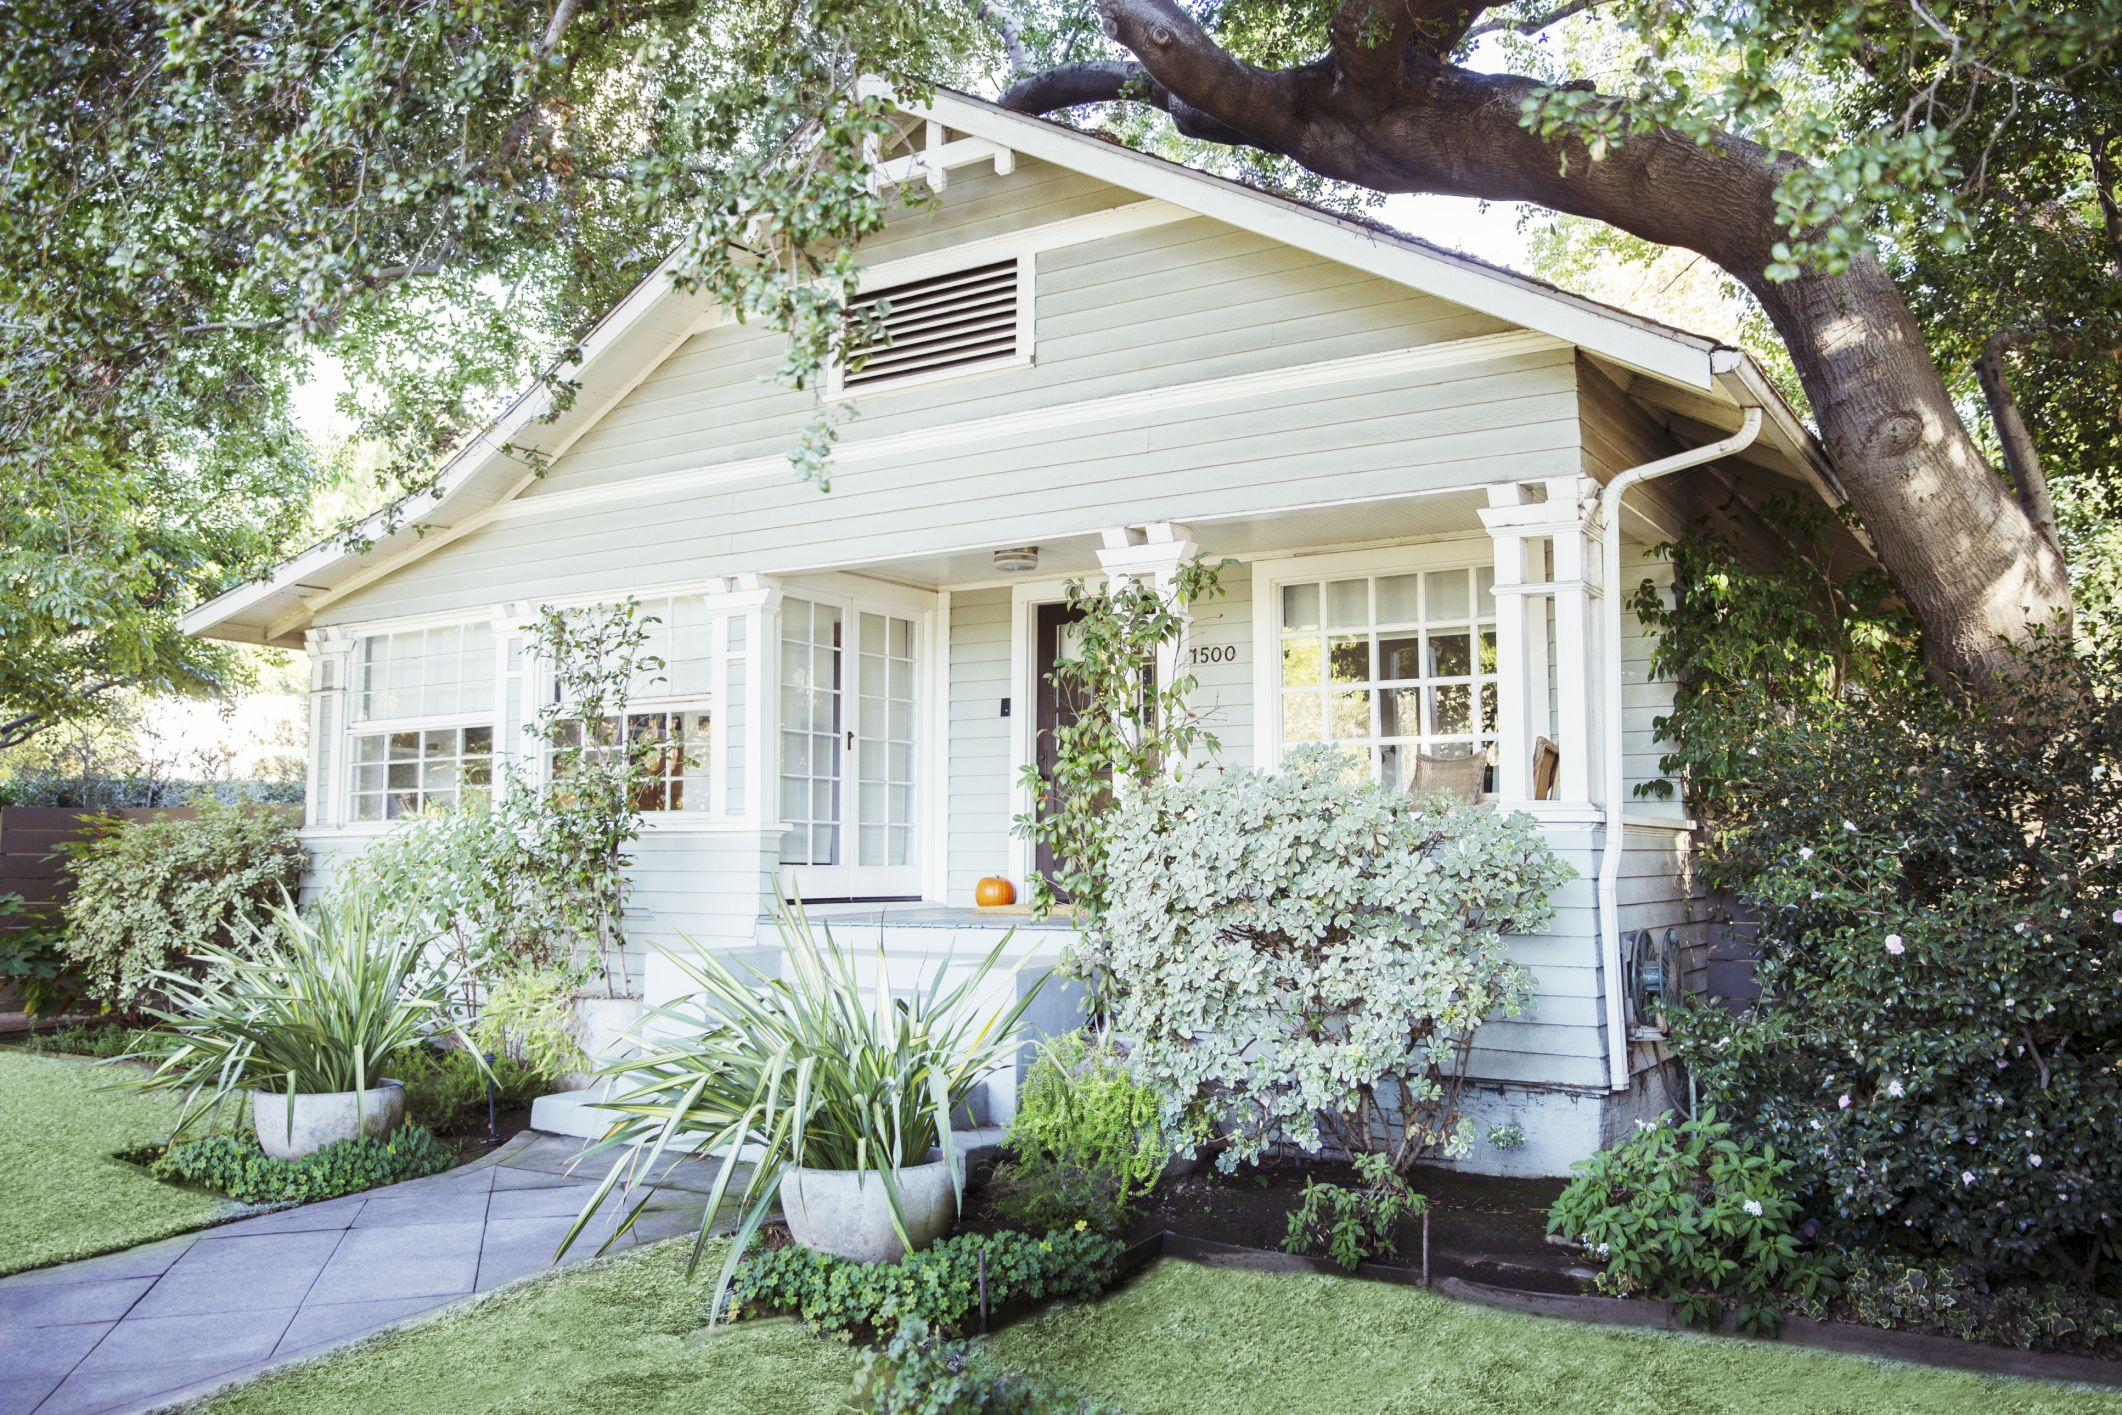 Expertly-Crafted Paint Schemes for Your Home Exterior